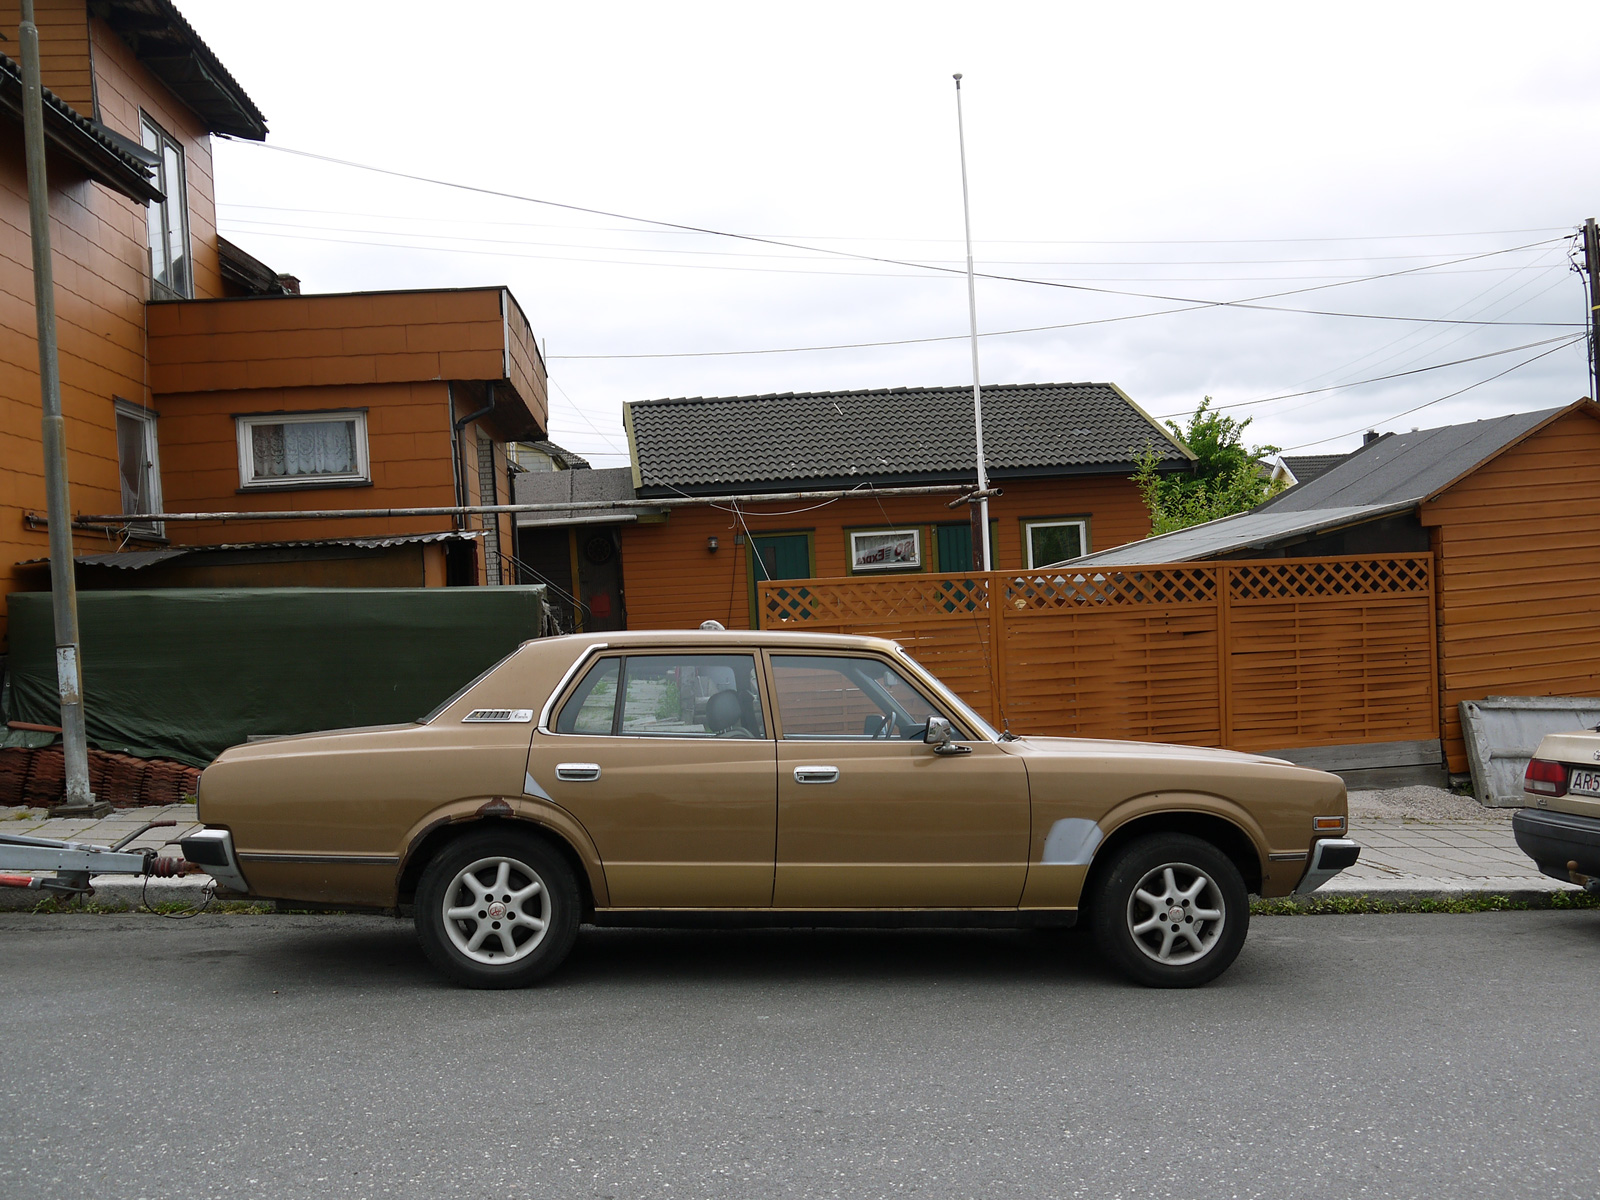 1979 Toyota Crown 2600 Deluxe Sarpsborg Norway Parked cars